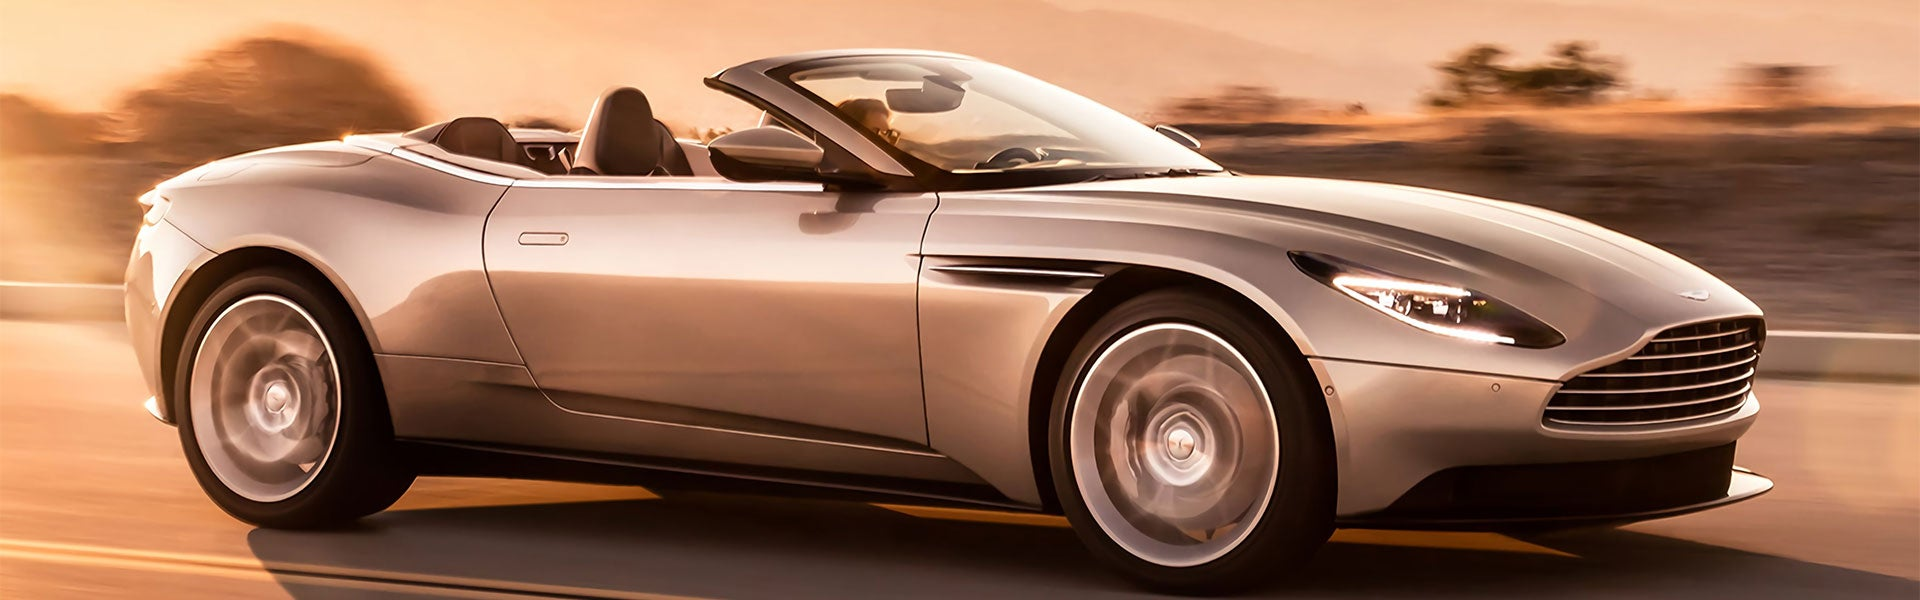 2020 Aston Martin Db11 Volante Review Specs Features Fort Lauderdale Fl